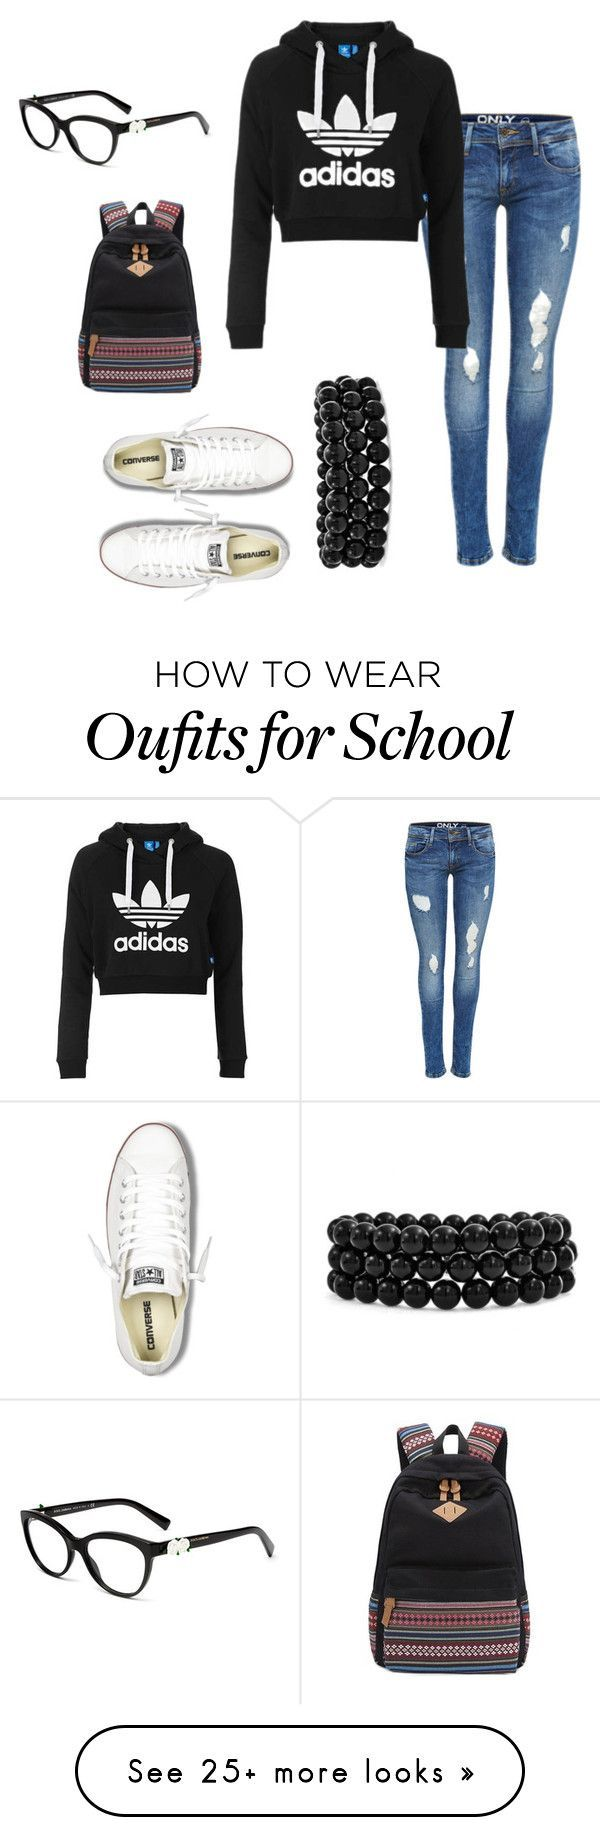 Best 25+ 8th grade outfits ideas on Pinterest | 7th grade ...